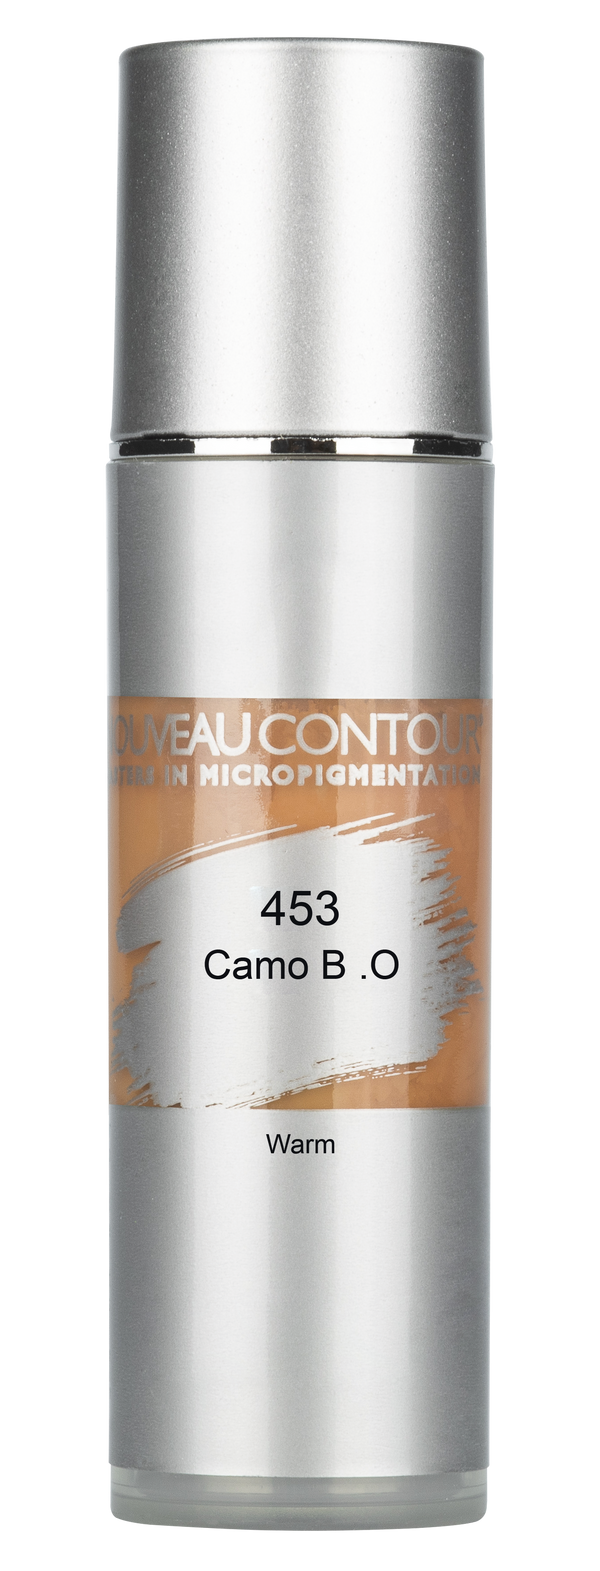 Camouflage Pigments (598716678204)